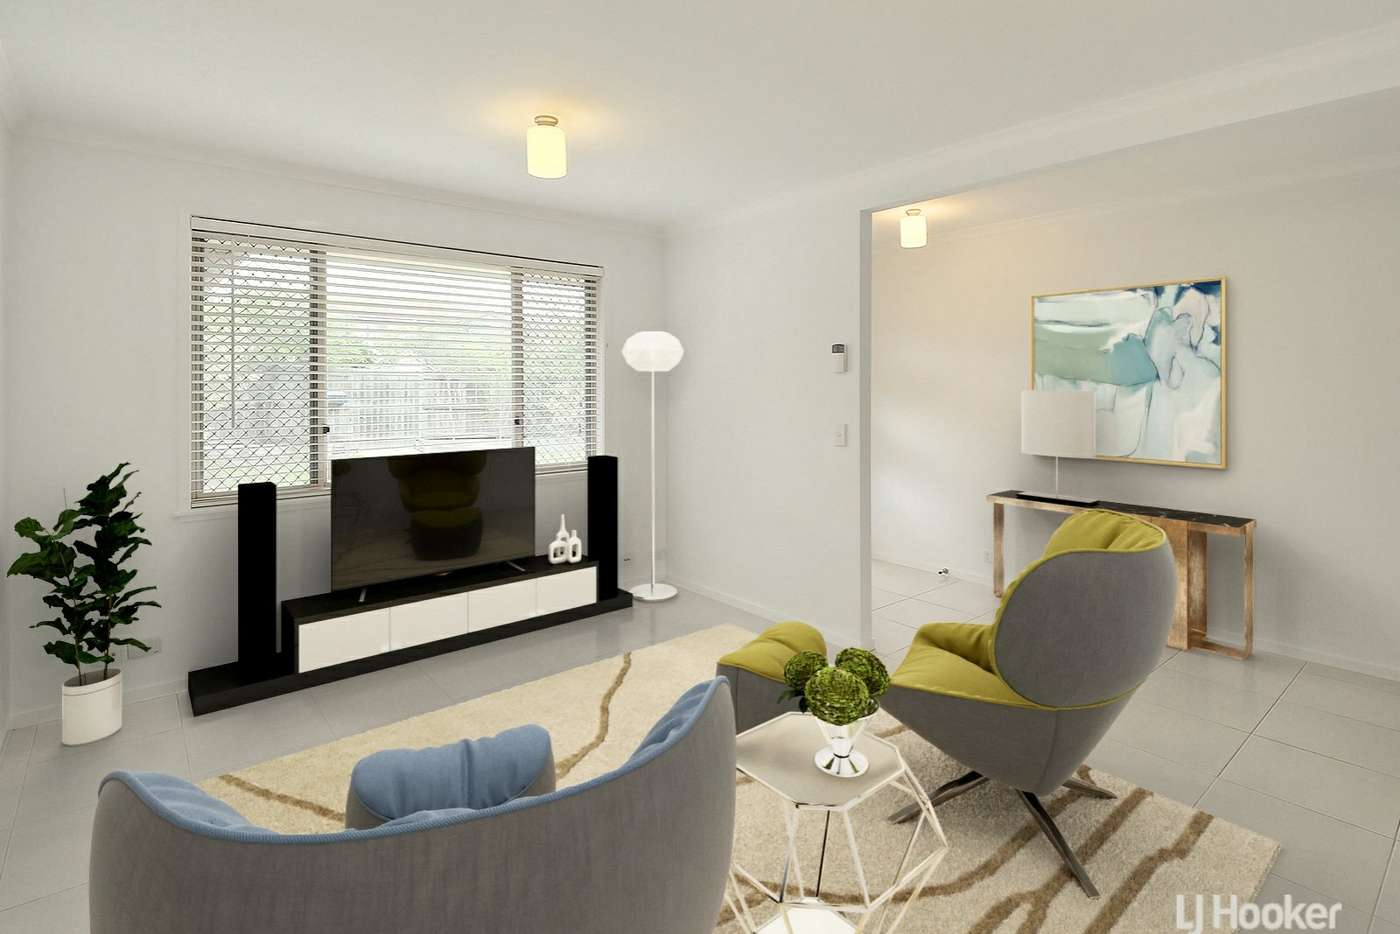 Main view of Homely house listing, 285 Algester Road, Algester QLD 4115